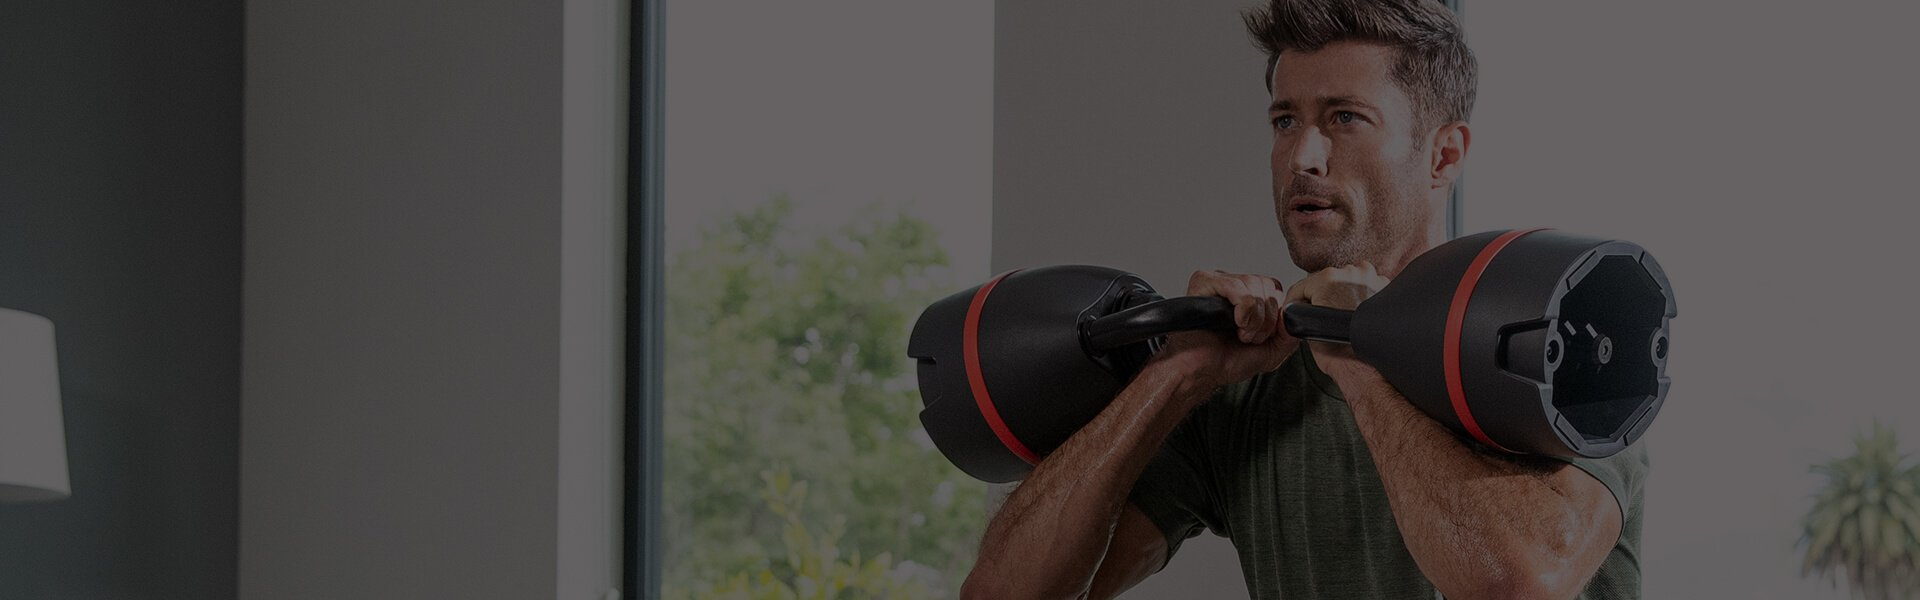 Kettlebell Exercise Videos